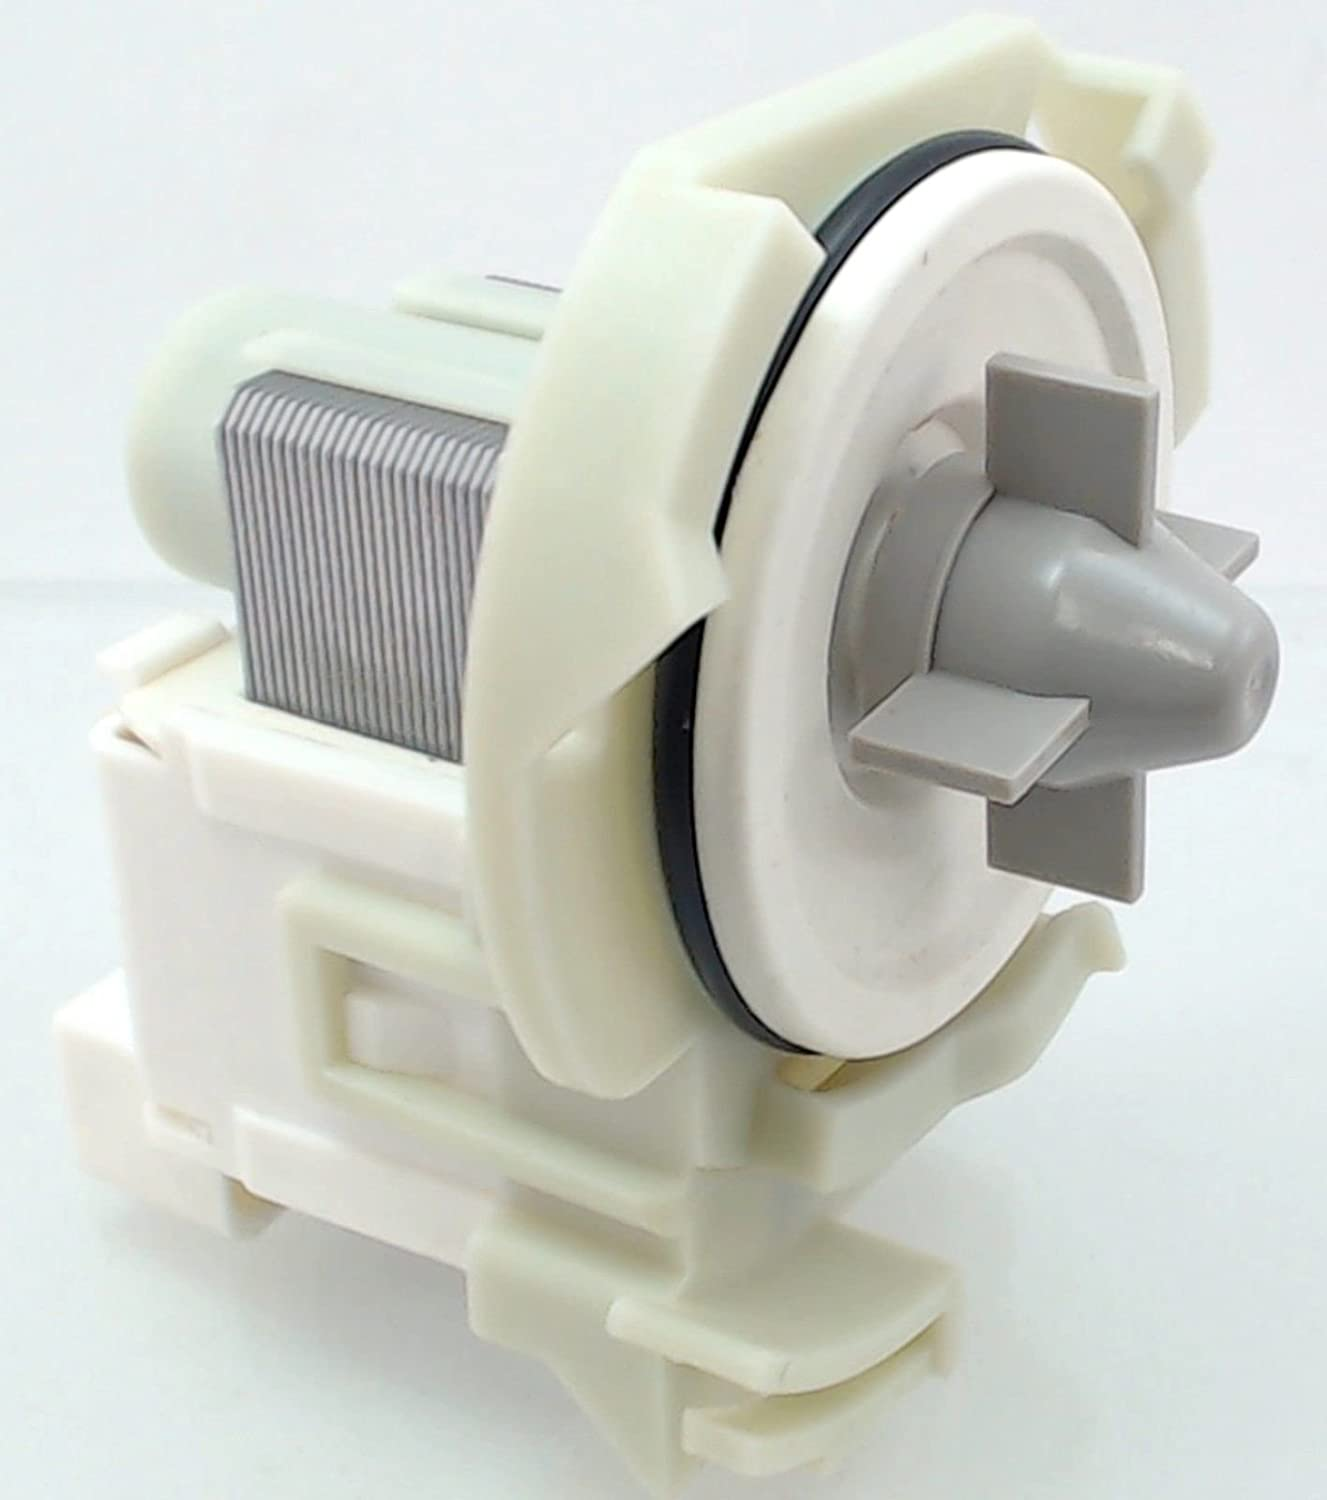 8558995 - NEW DISHWASHER DRAIN PUMP FOR WHIRLPOOL KENMORE MAYTAG KITCHENAID AND other Brands